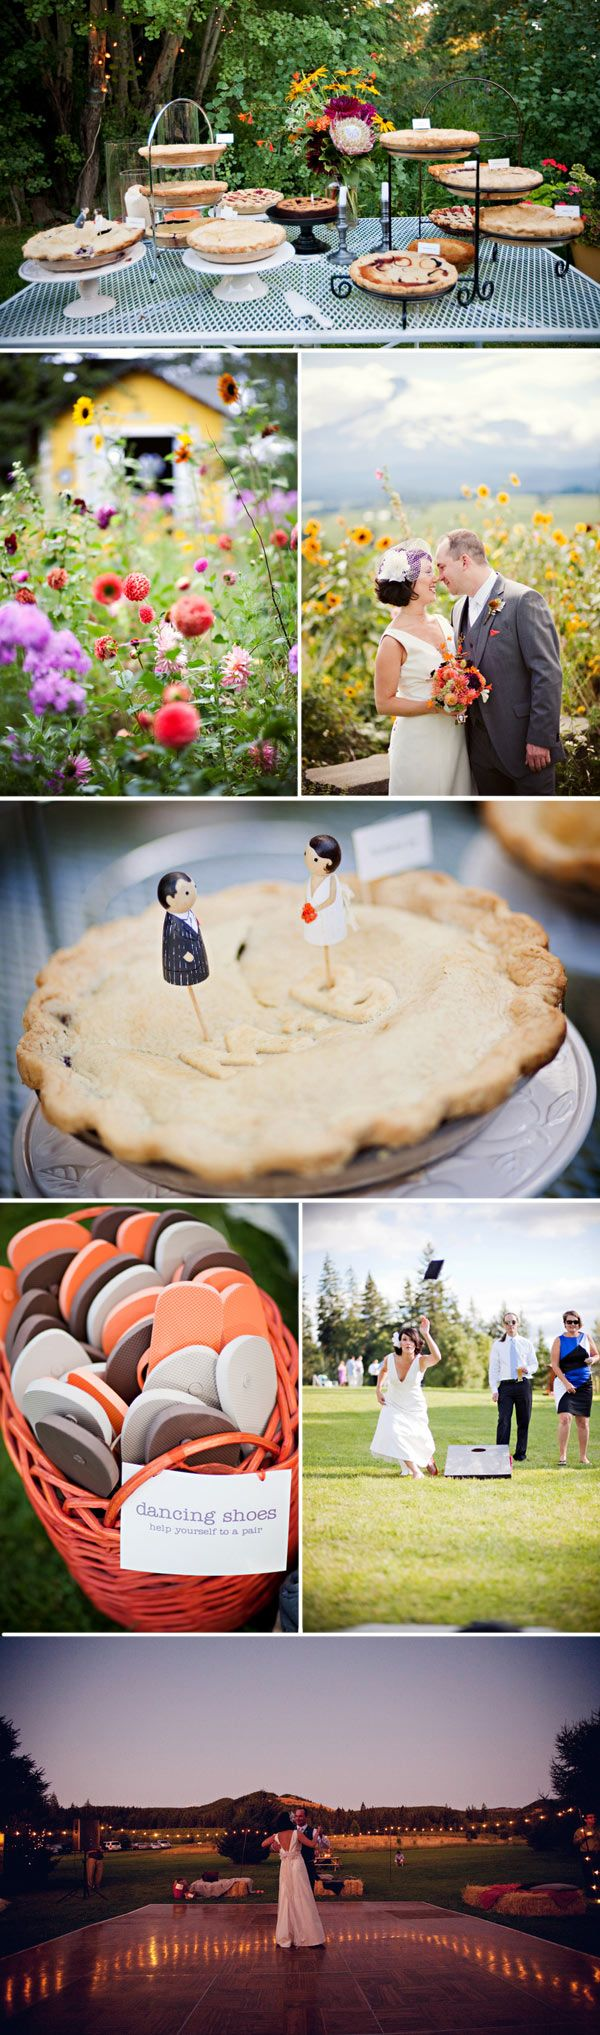 I love the idea of dancing shoes at a wedding but also pie instead of cake kind of nice.